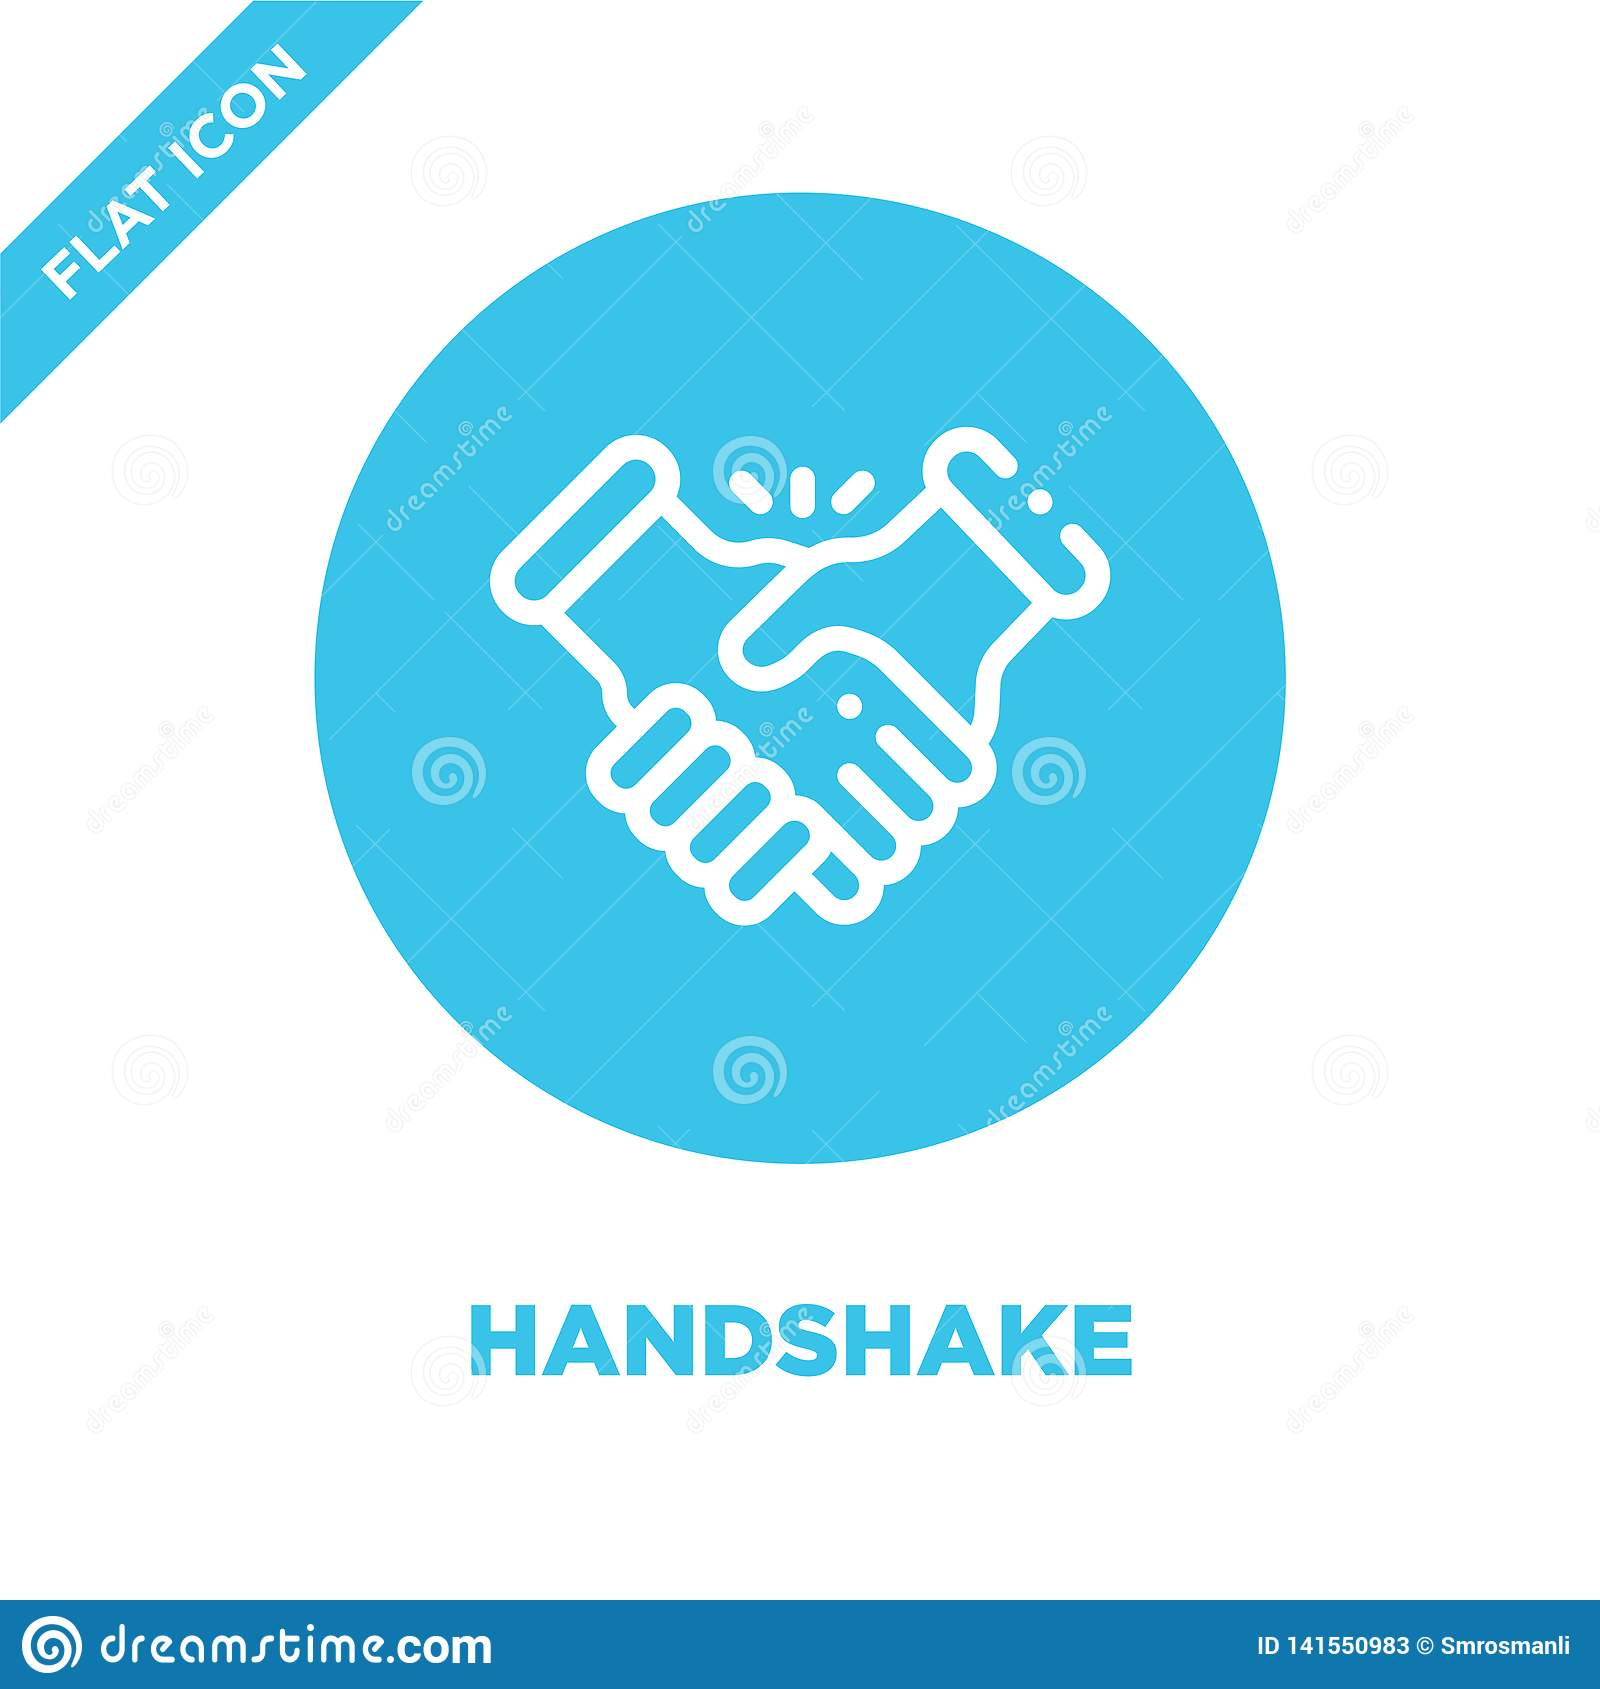 handshake icon vector. Thin line handshake outline icon vector illustration.handshake symbol for use on web and mobile apps, logo